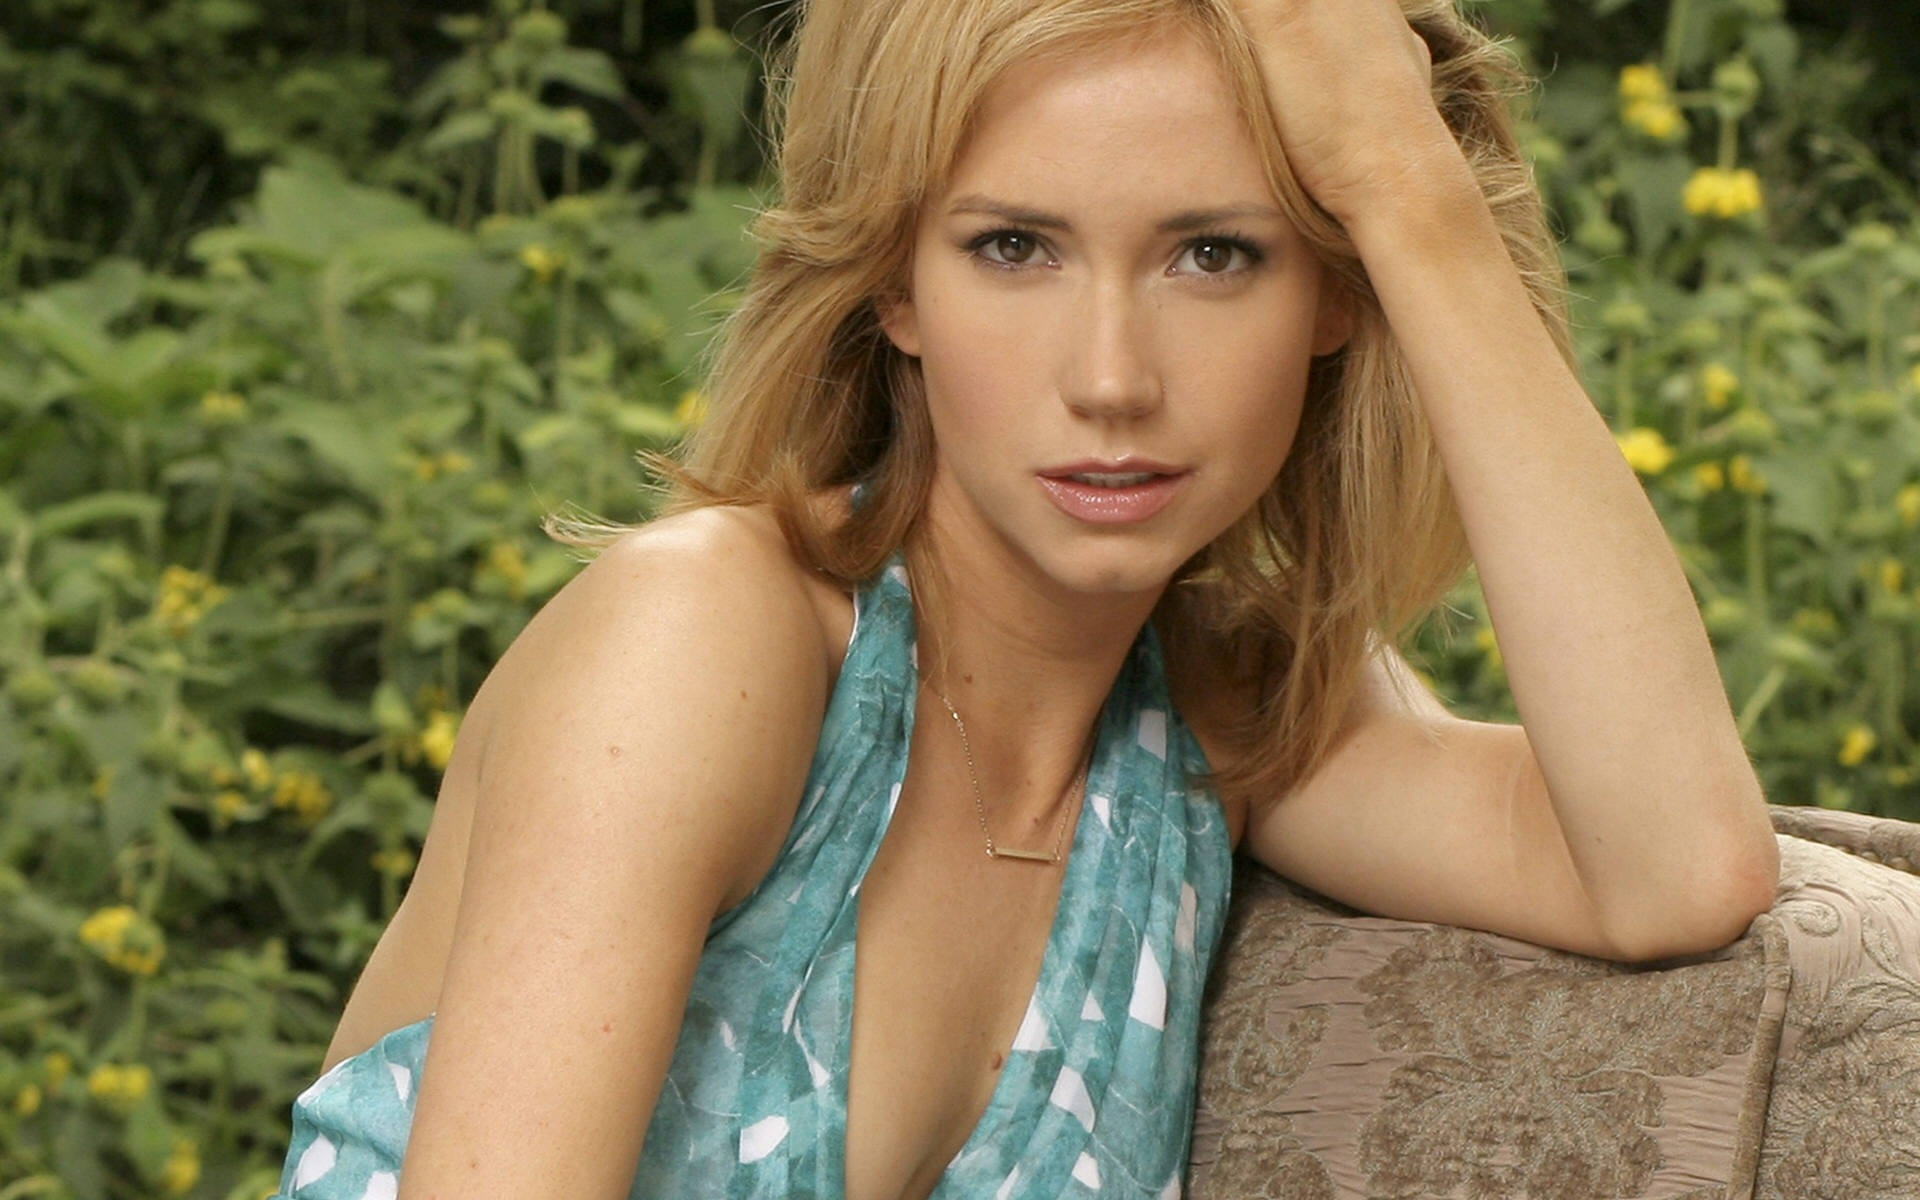 Ashley Jones #006 - 1920x1200 Wallpapers Pictures Photos Images